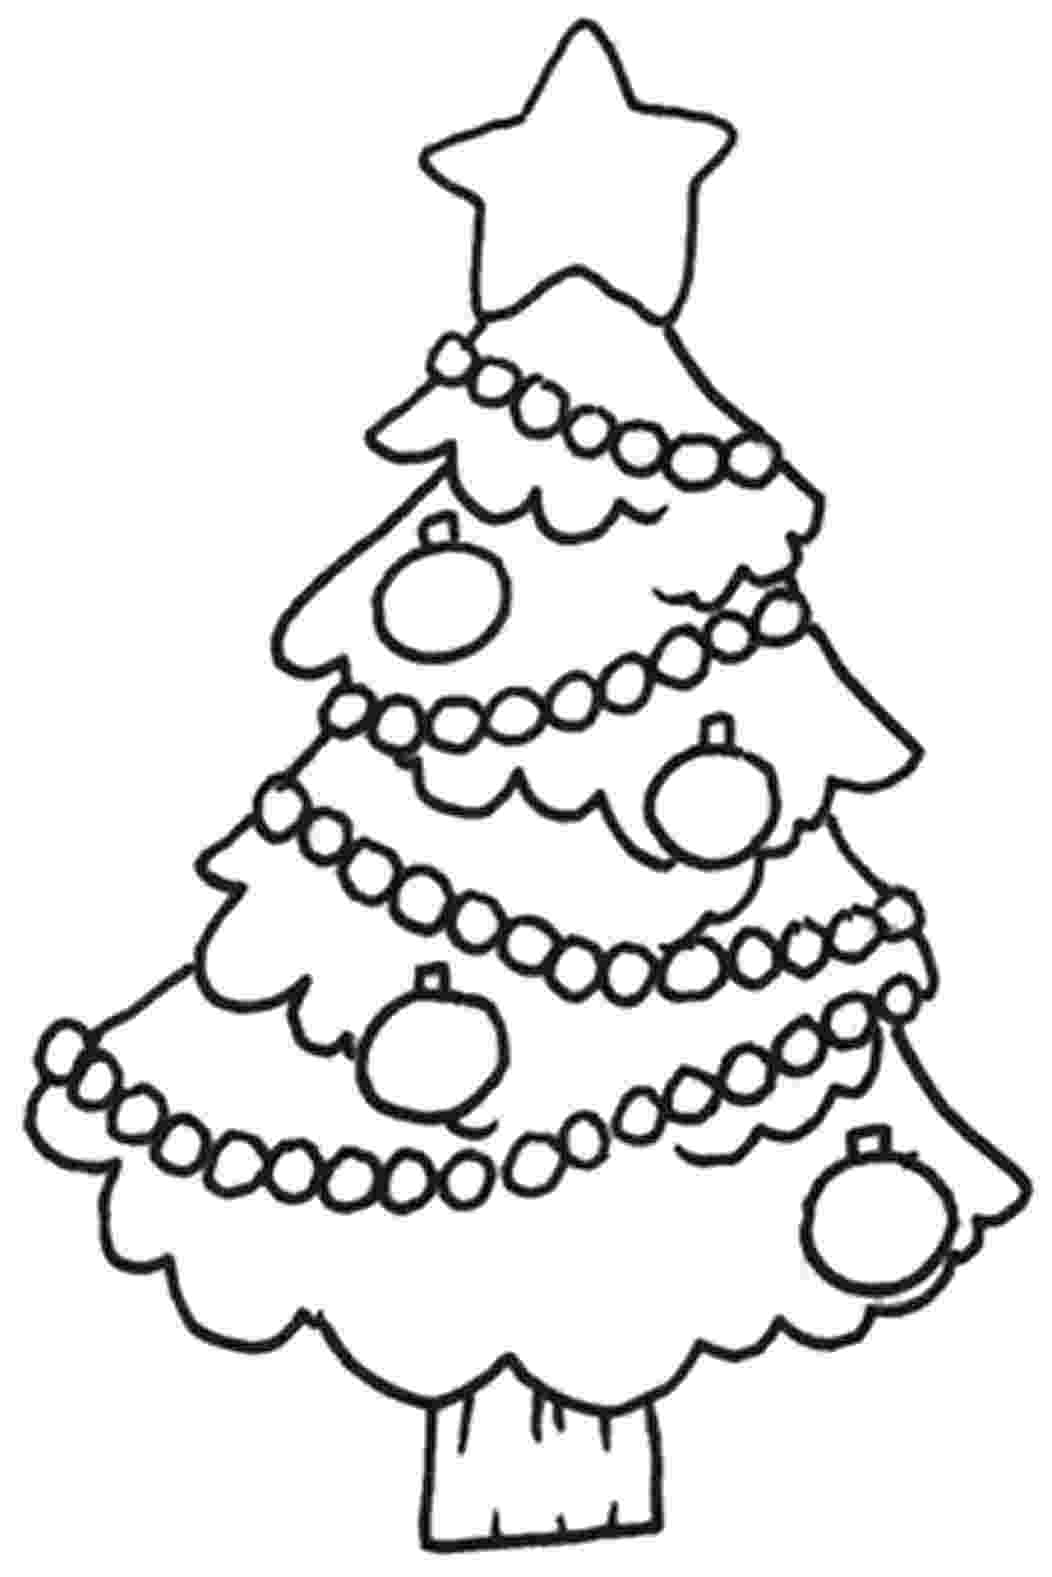 coloring pages for christmas free printable 21 christmas printable coloring pages printable free for pages coloring christmas